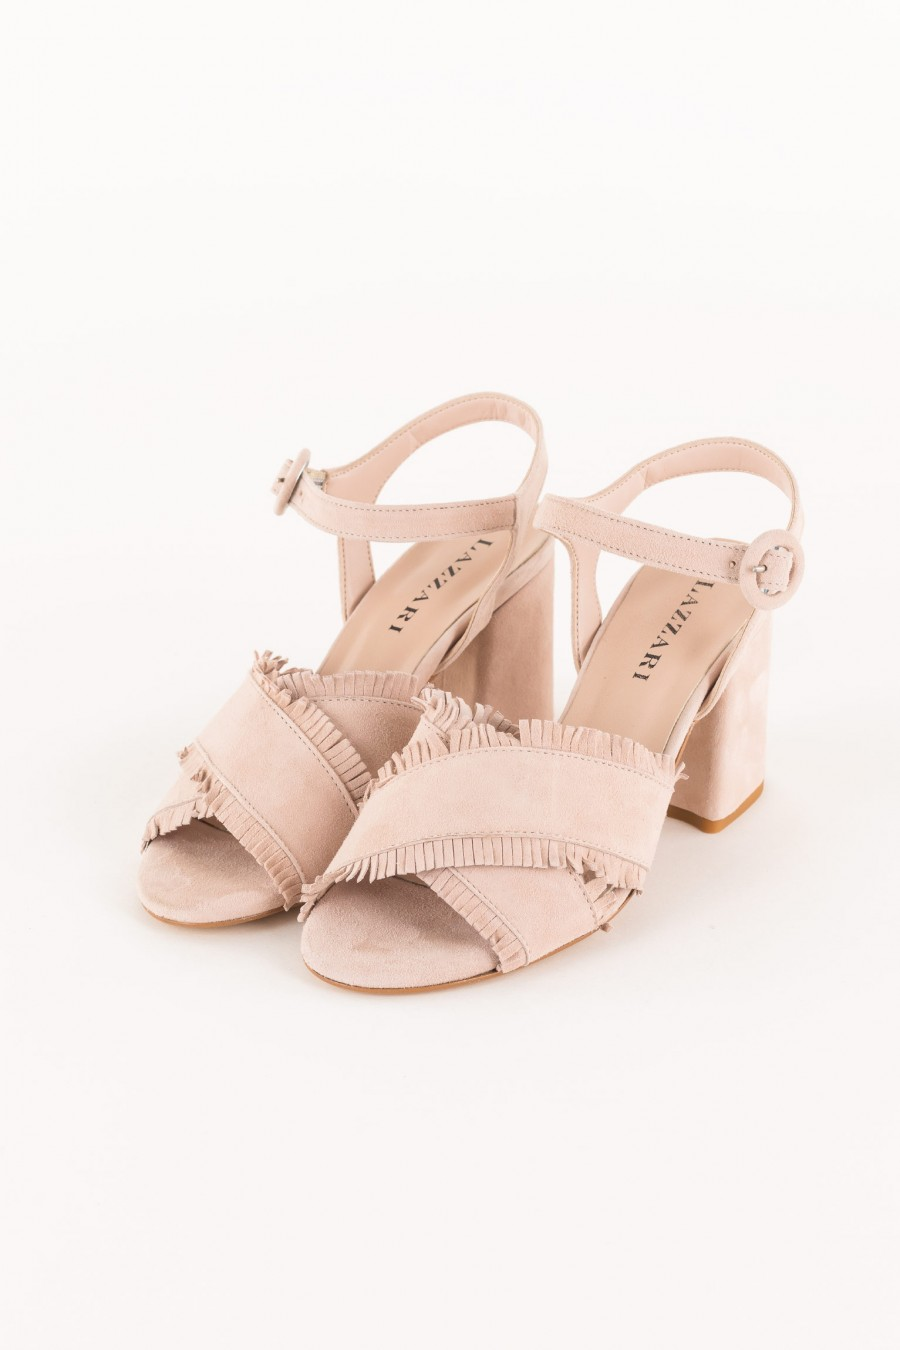 powder sandal with ankle strap